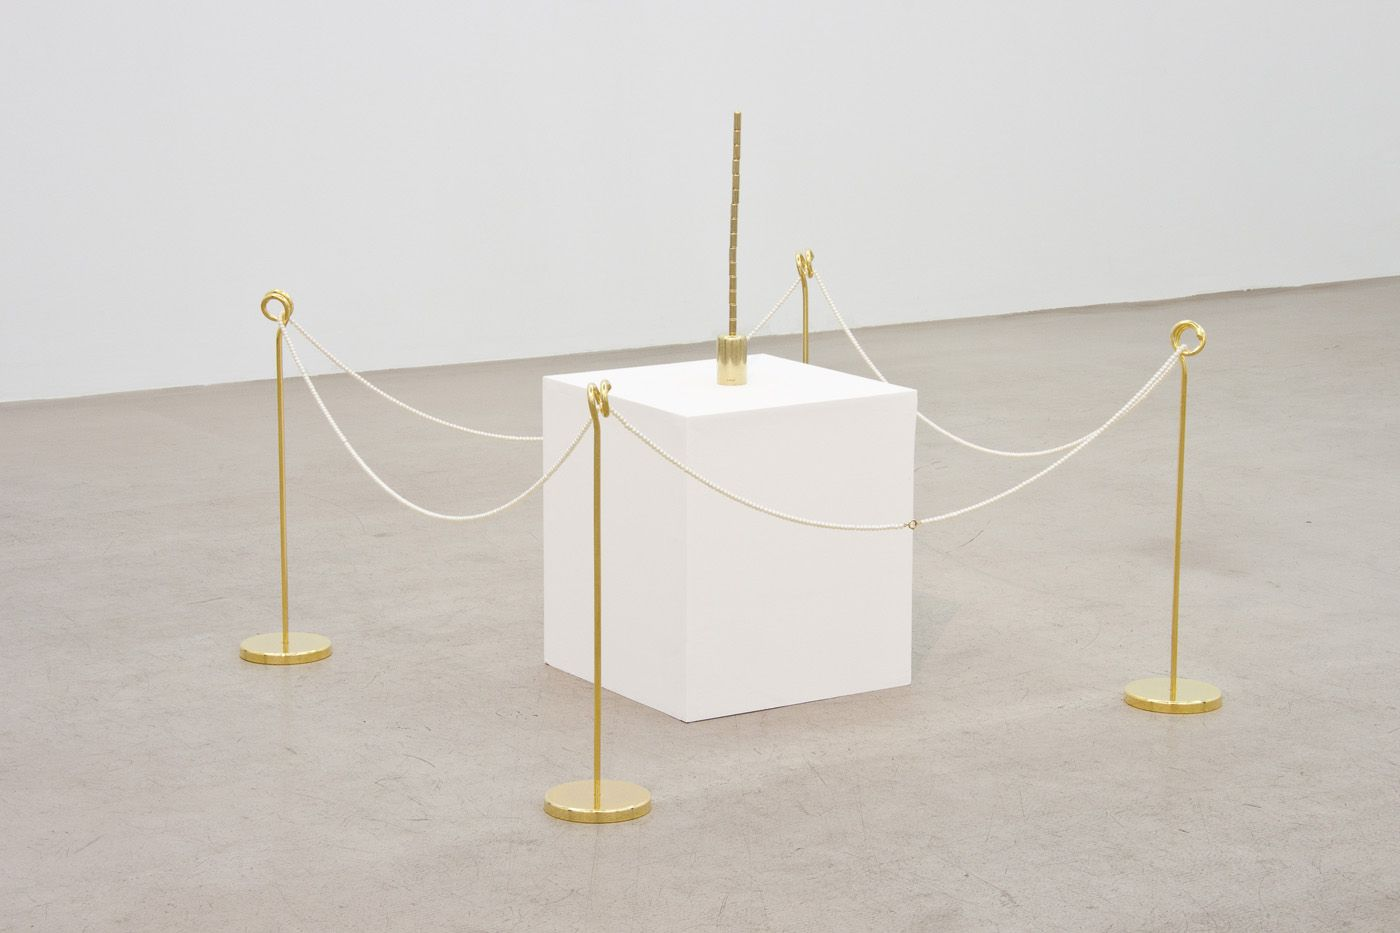 Installation view, Benjamin Lignel, Lingam and Yoni,  How do you like me now ? NextLevel Galerie, 2013, Photo: F. Kleinefenn